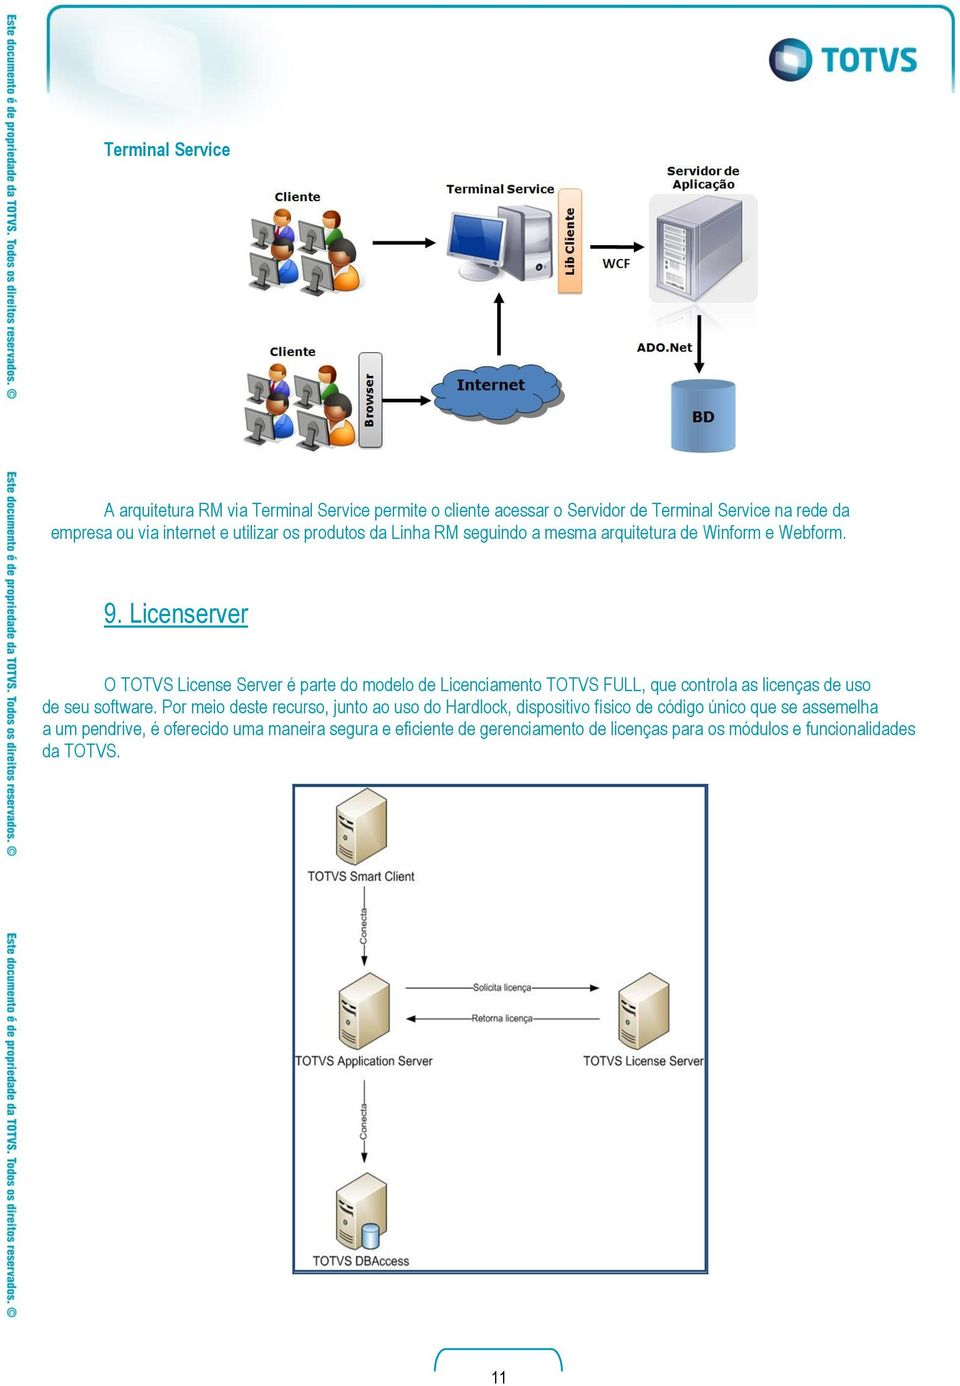 Licenserver O TOTVS License Server é parte do modelo de Licenciamento TOTVS FULL, que controla as licenças de uso de seu software.